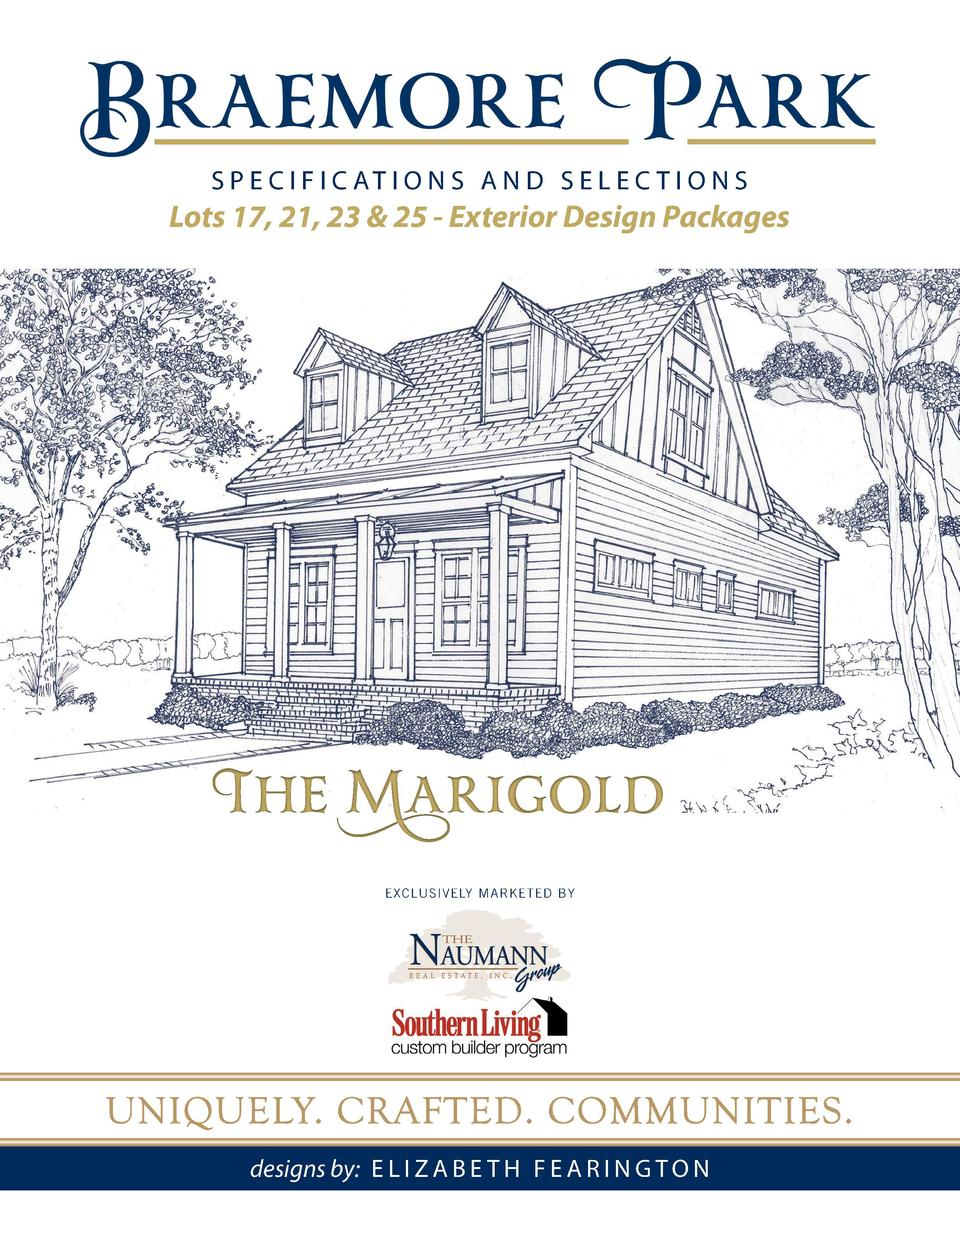 S P E C I F I C AT I O N S A N D S E L E C T I O N S  Lots 17, 21, 23   25 - Exterior Design Packages  The Marigold EXCLUS...